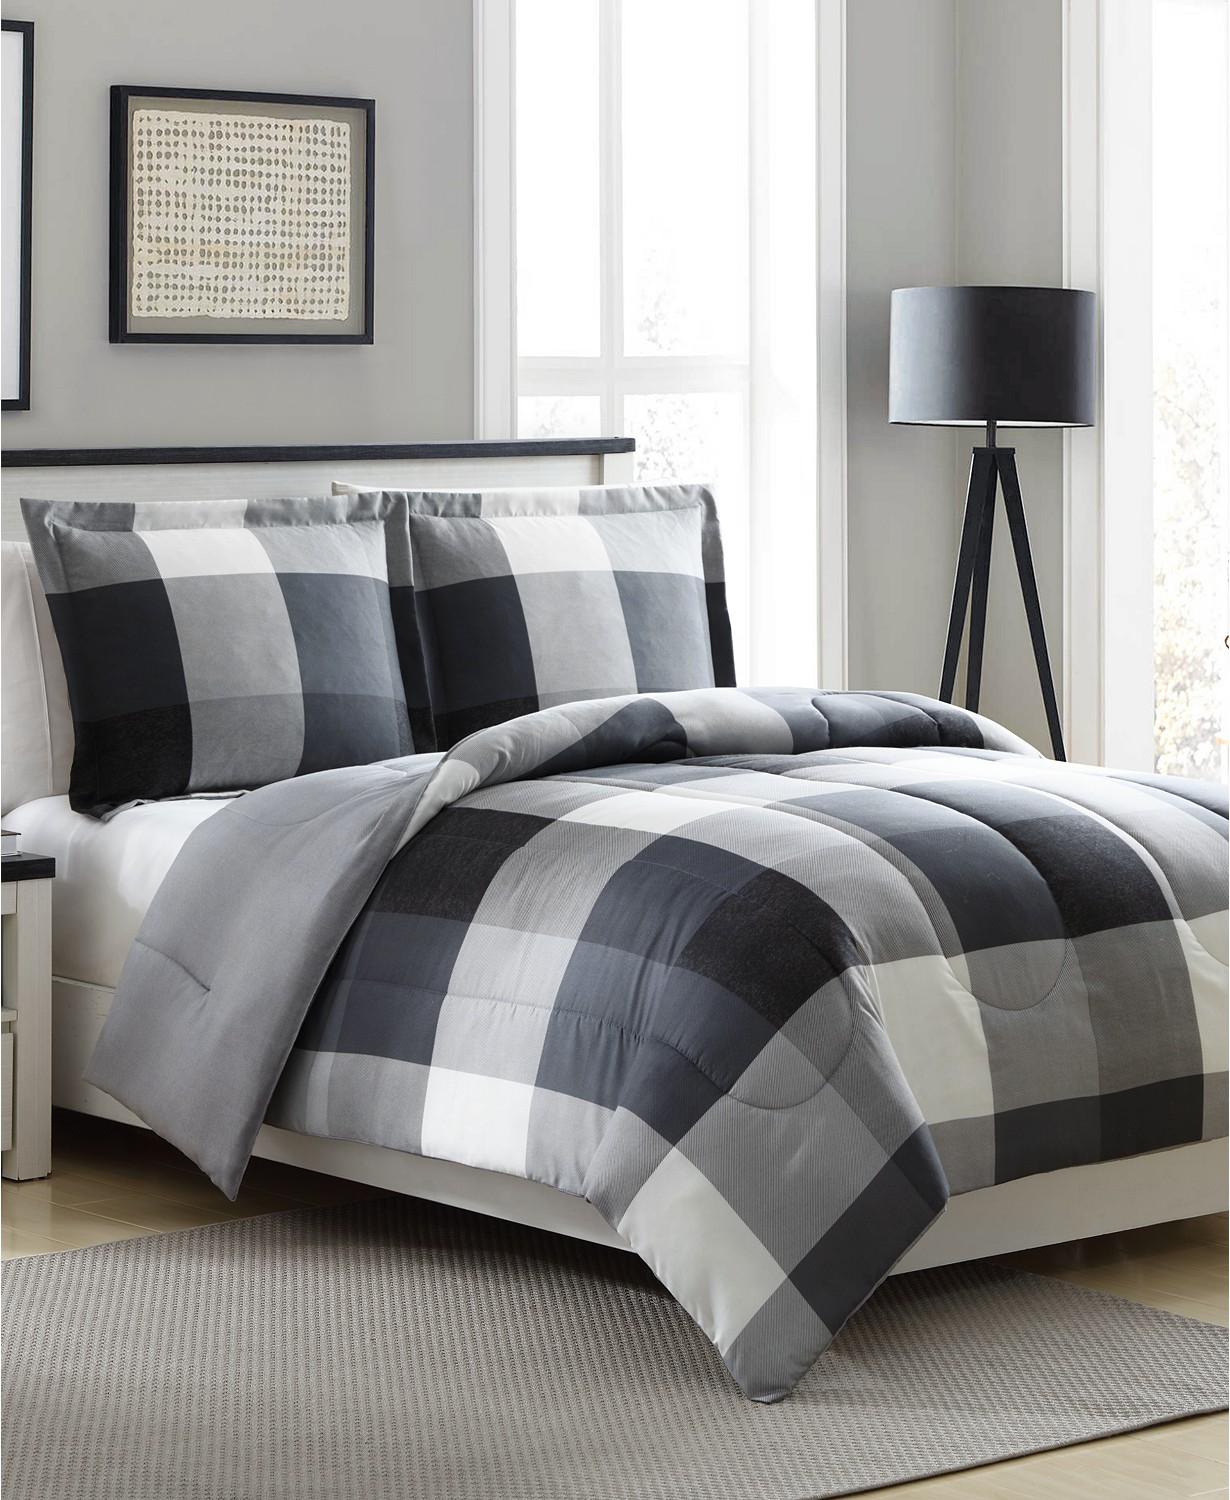 Ellison First Asia Tanner Reversible 3-Piece Comforter Set (Full/Queen) $17.99